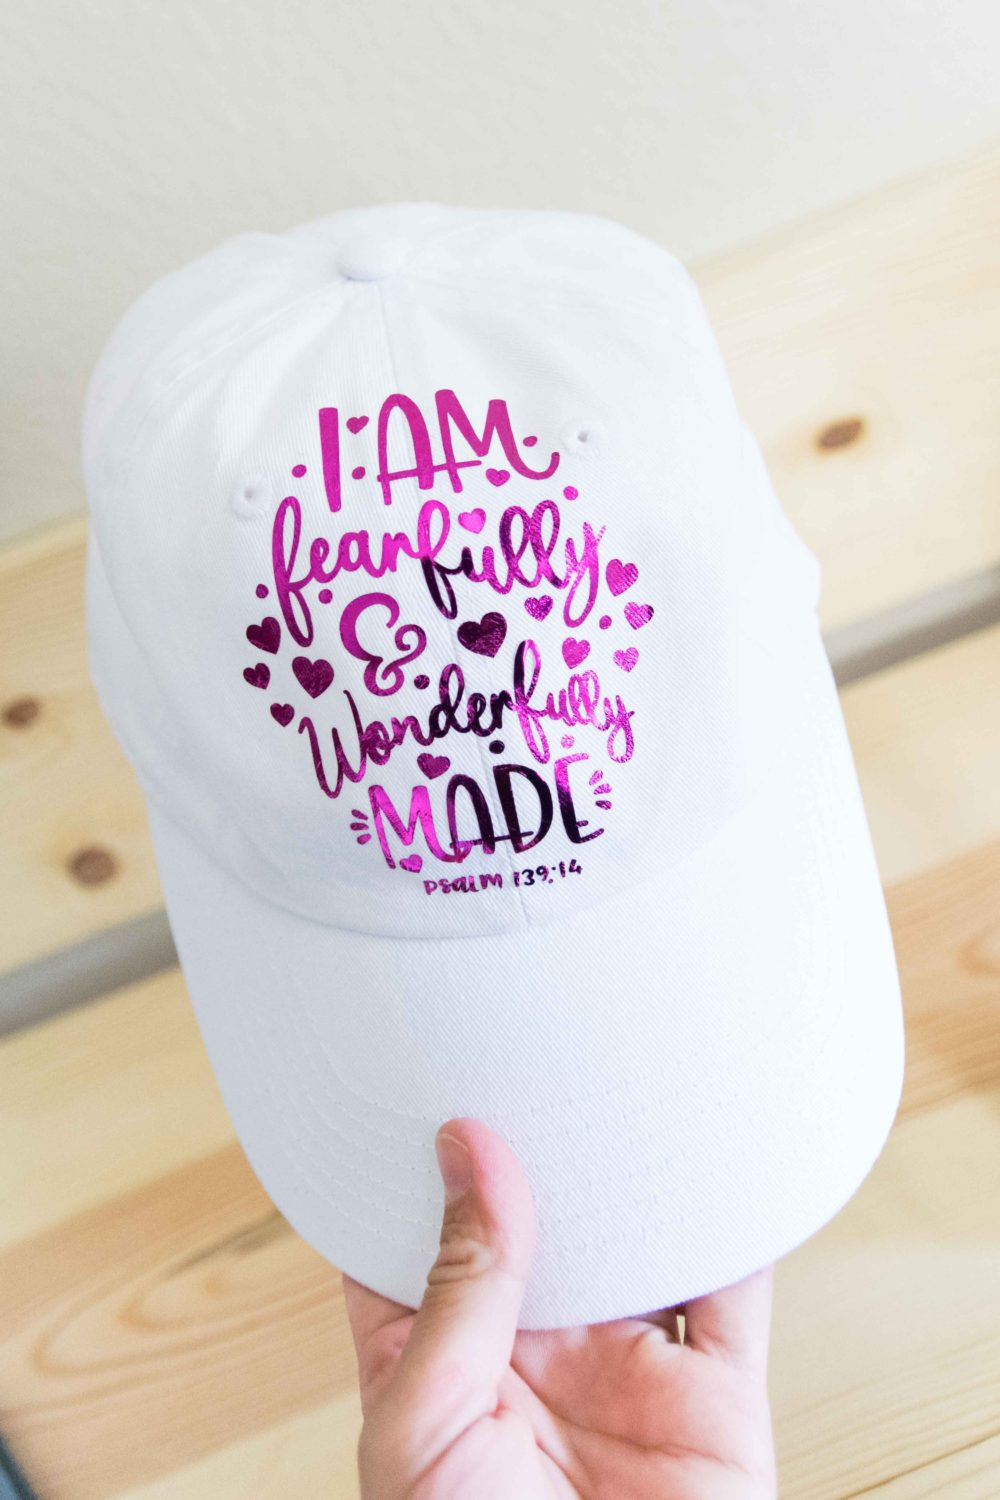 Hat made with the Cricut Easypress Mini